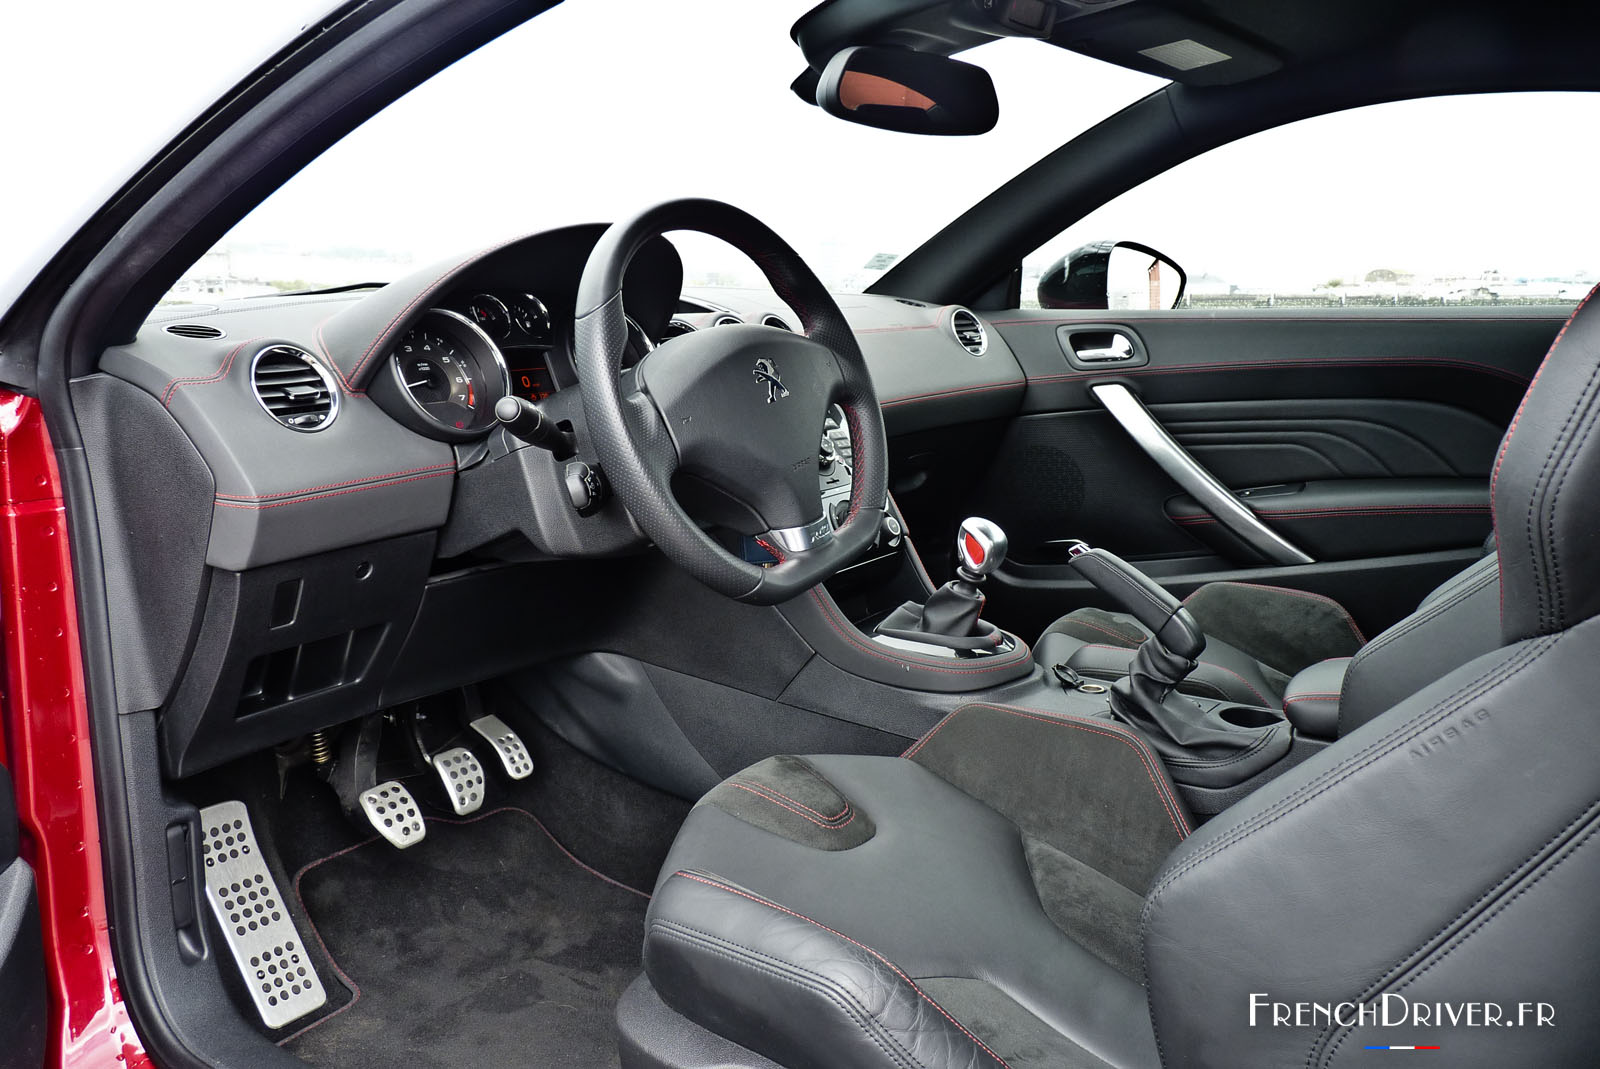 essai de la peugeot rcz r pour demain l 39 avenir french driver. Black Bedroom Furniture Sets. Home Design Ideas